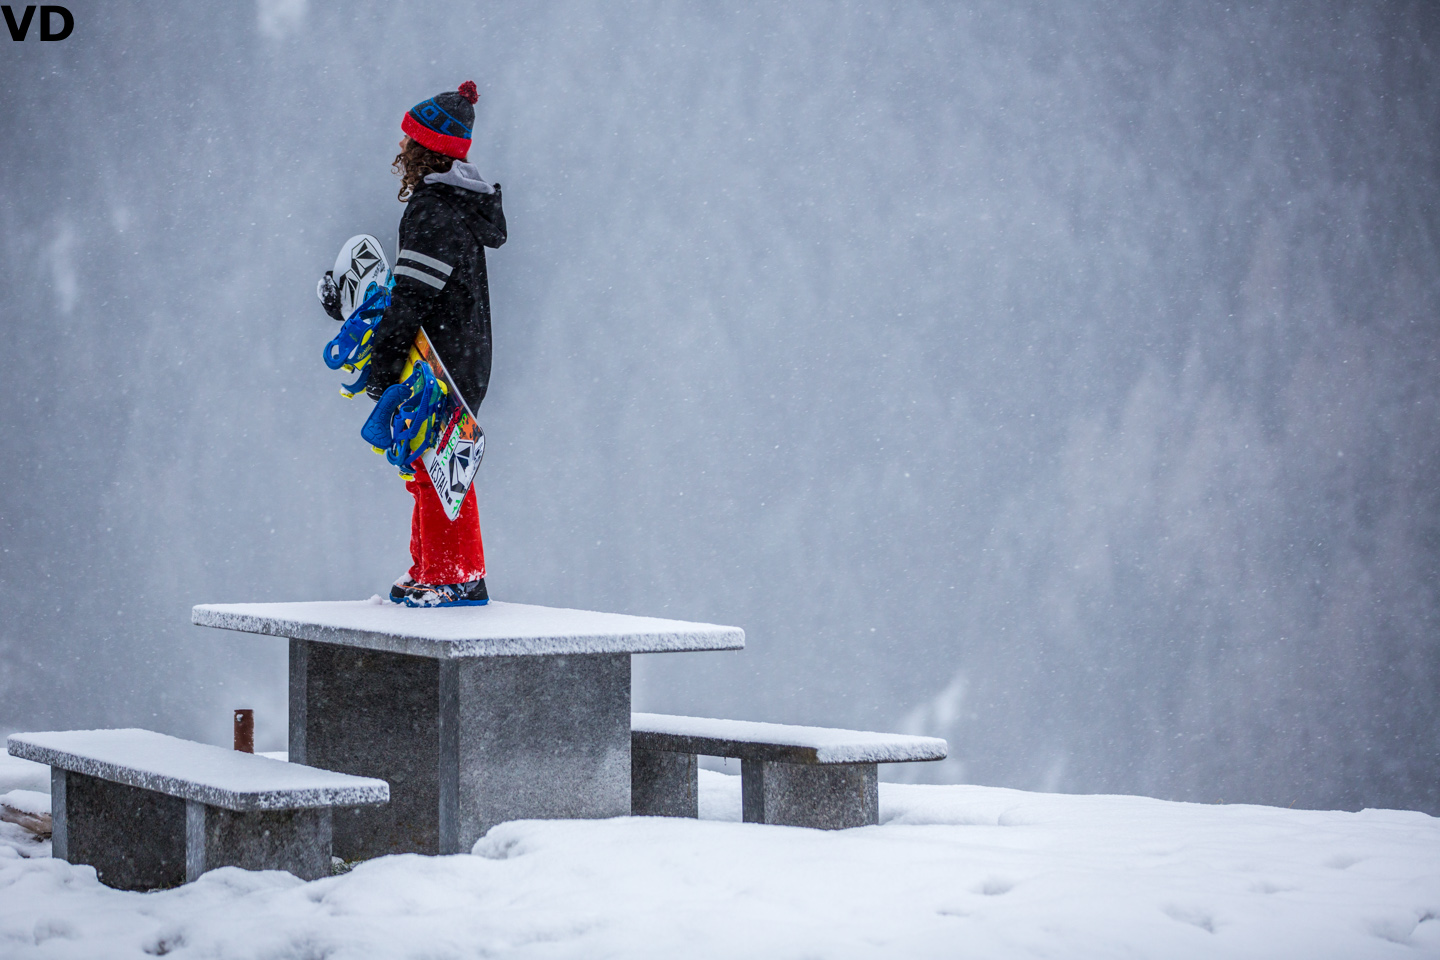 Valentino was left here to ponder his existence. Photo: Vernon Deck